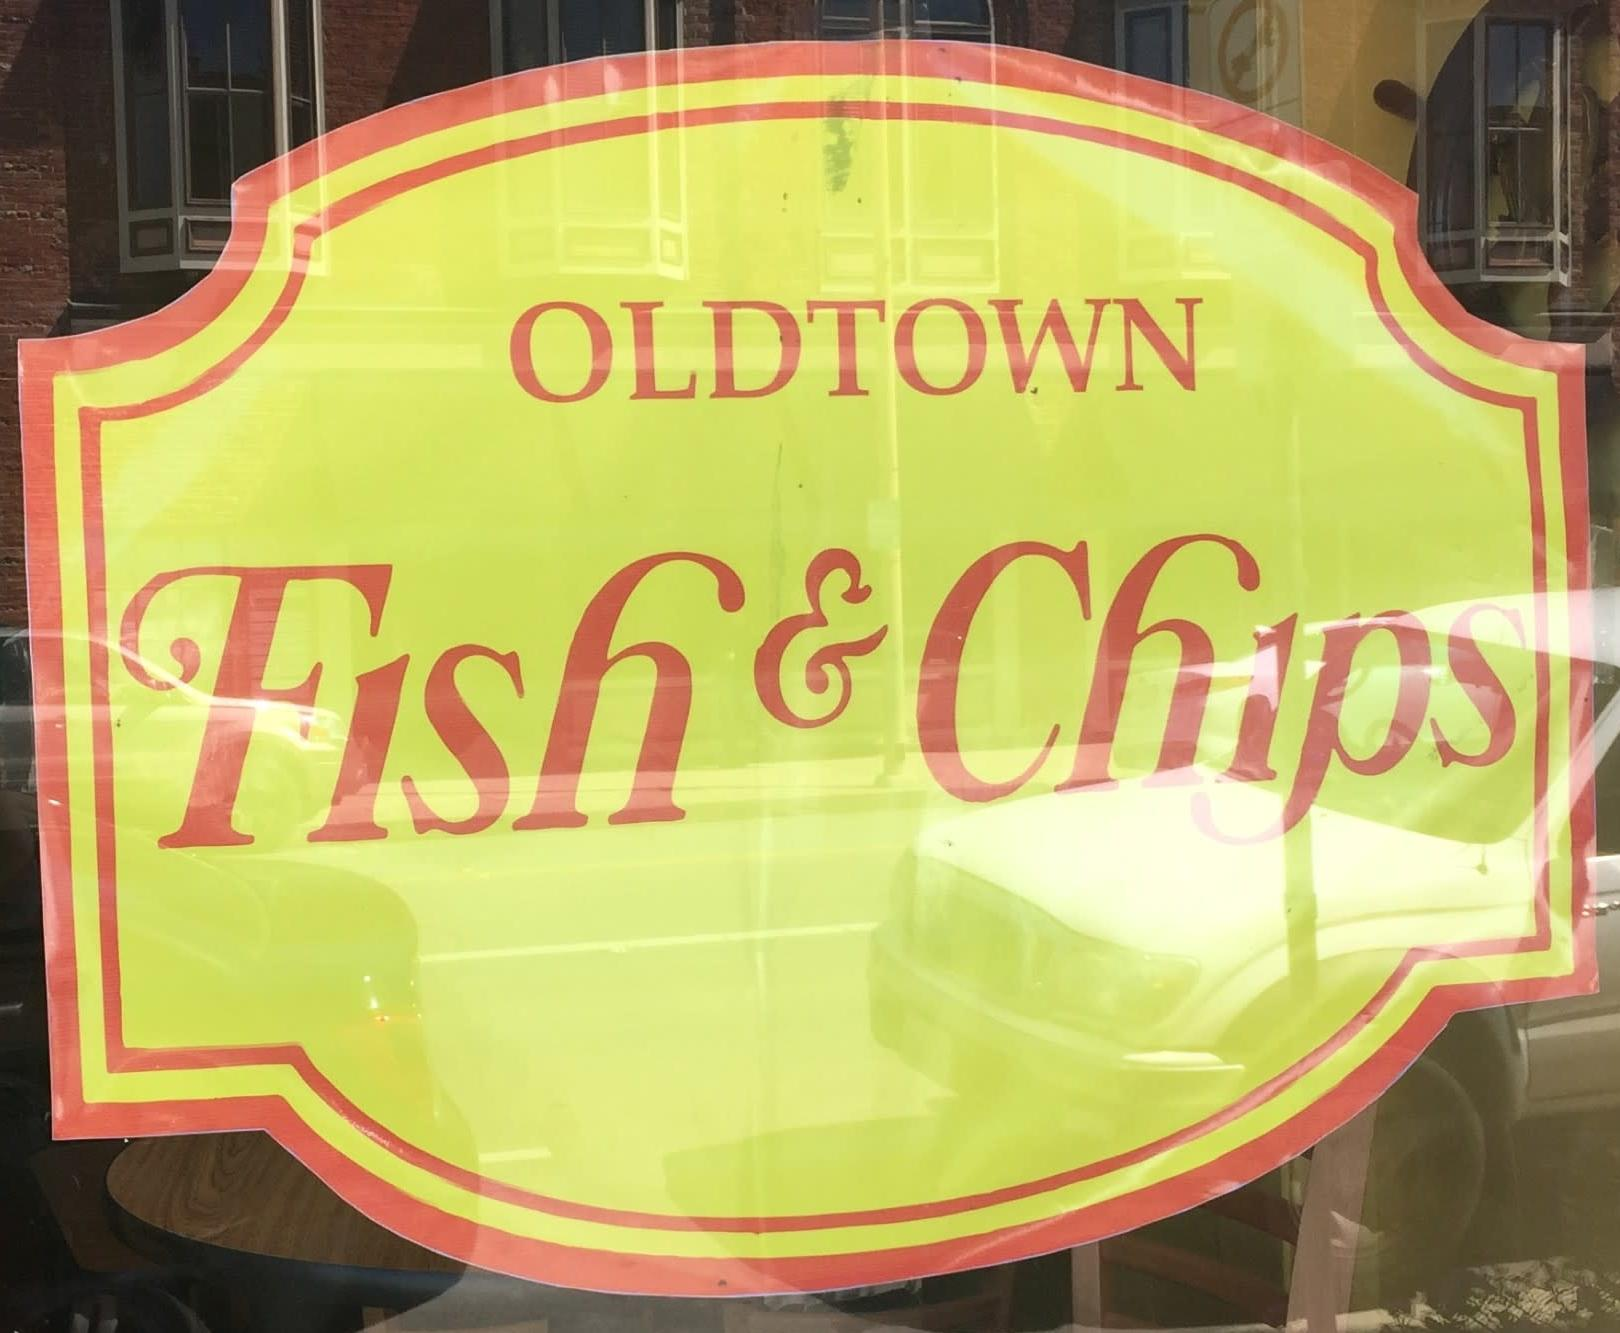 Connect at Lunch - Oldtown Fish and Chips